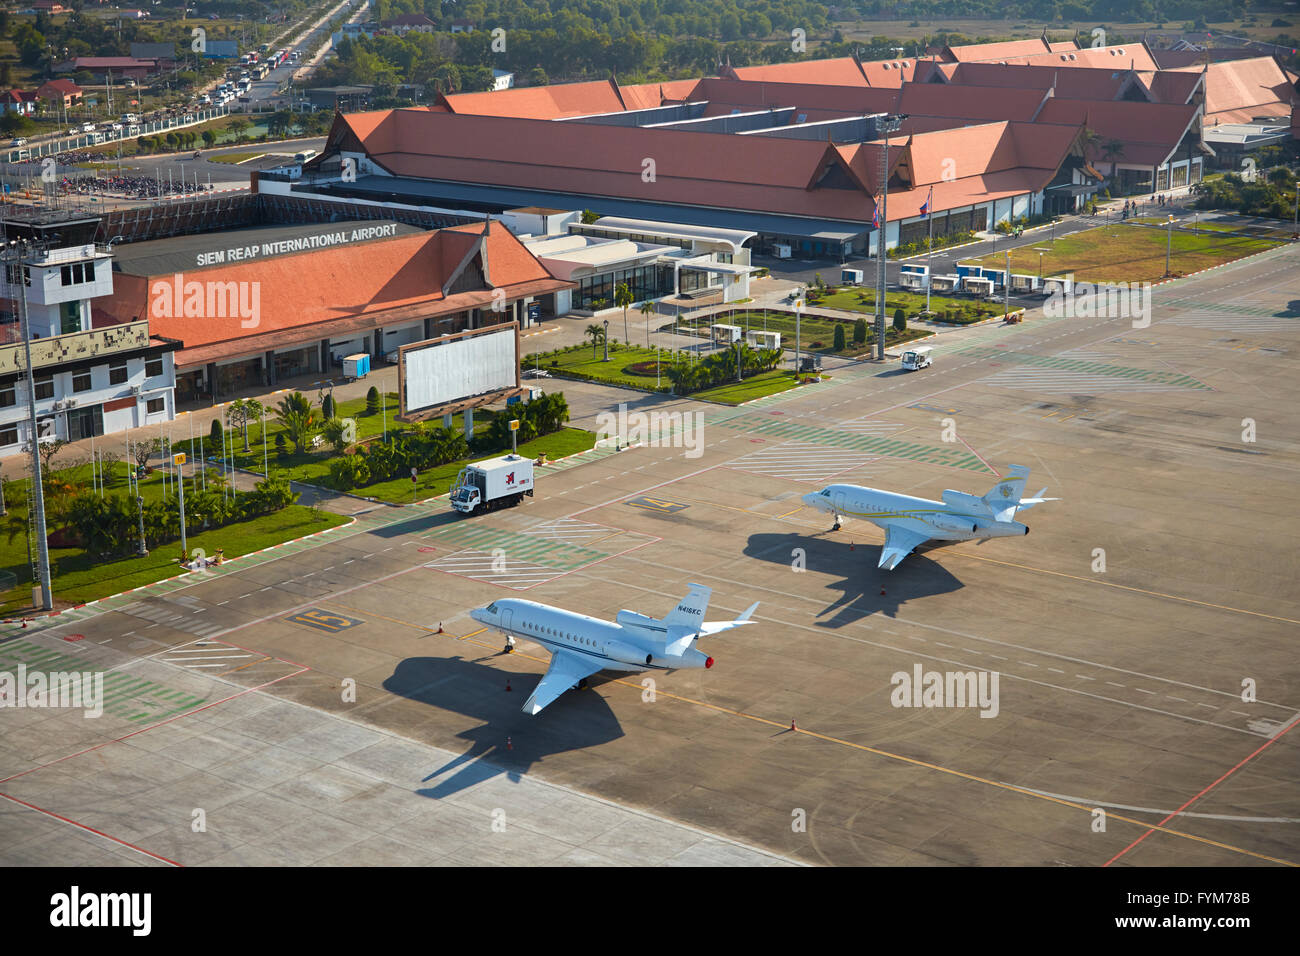 Private jets at Siem Reap International Airport, Siem Reap, Cambodia - aerial Stock Photo